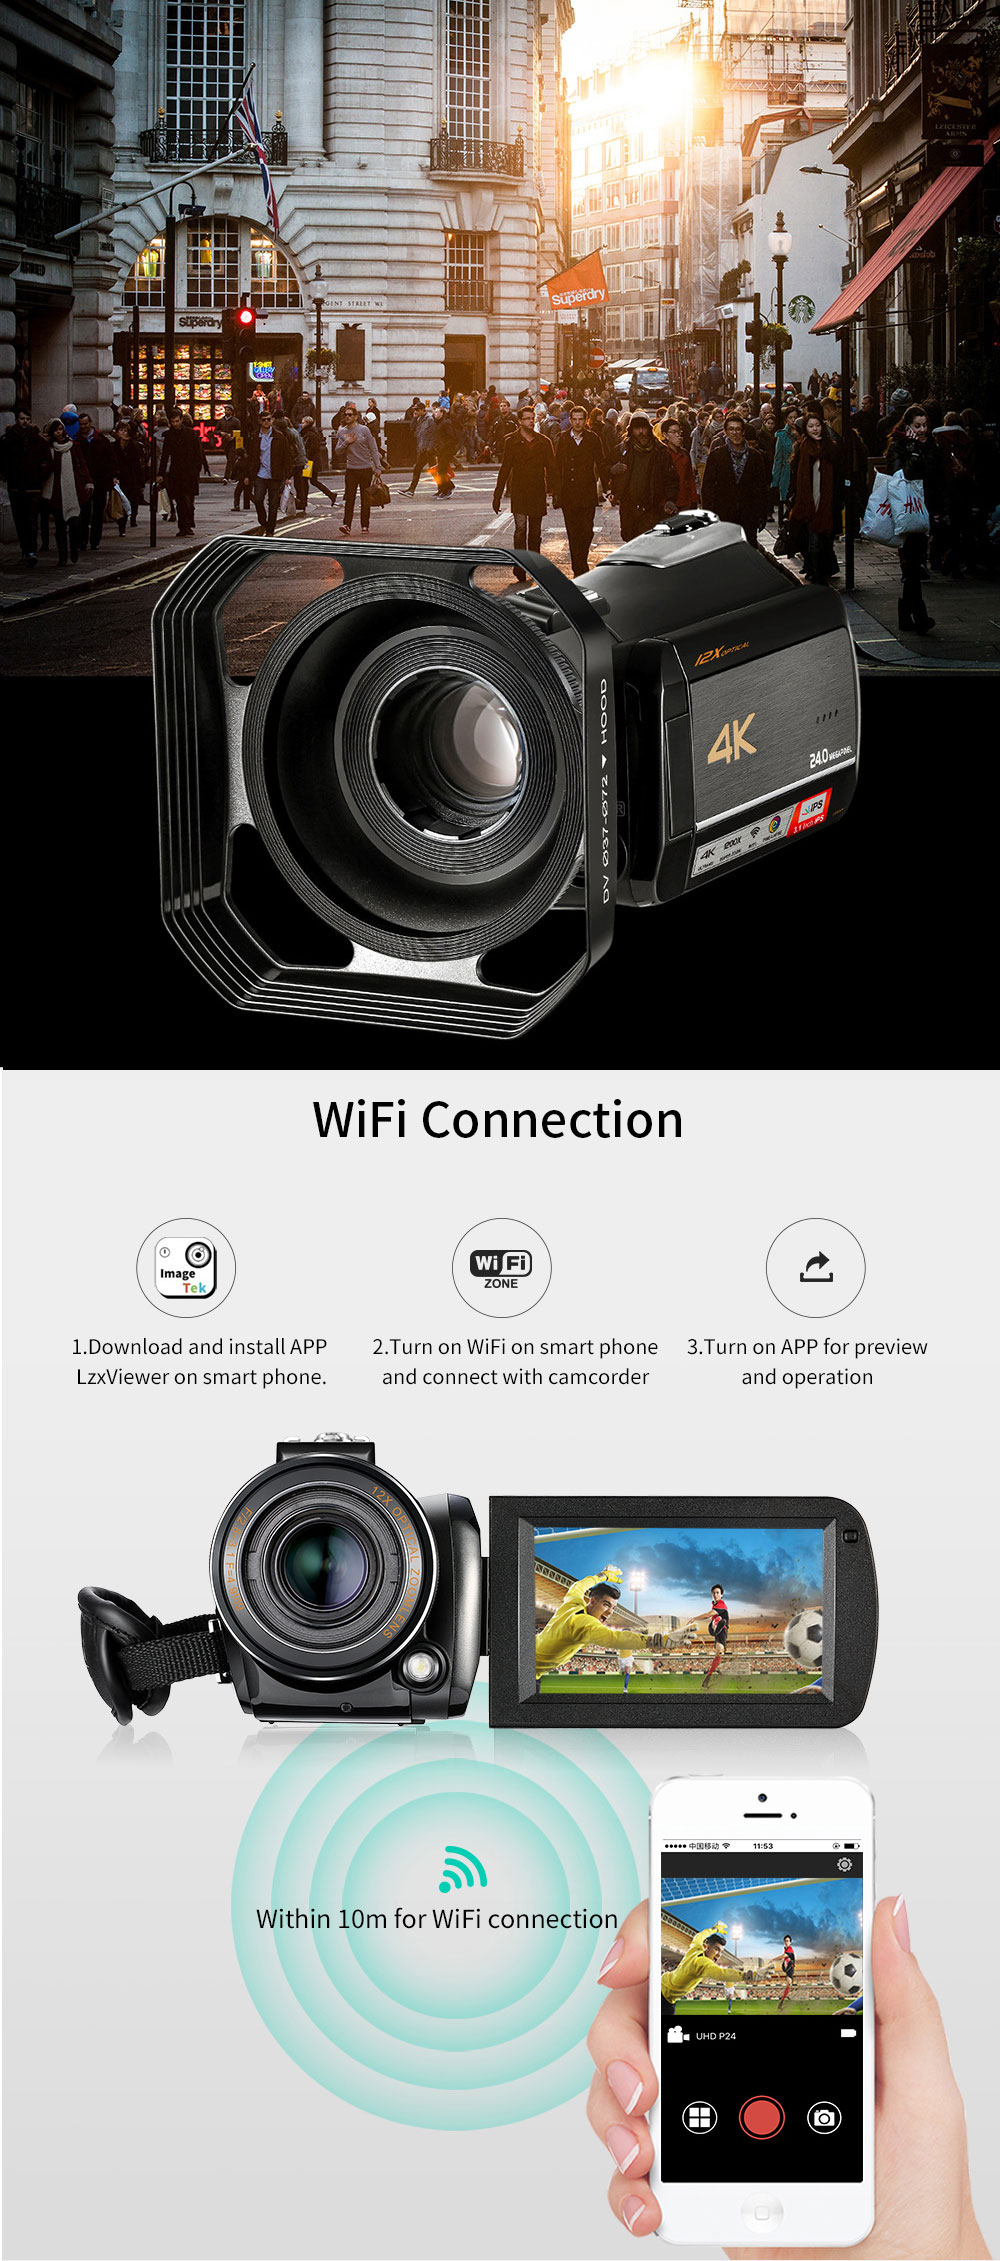 4k WIFI Digital Video Camcorder with 3.0'' Touch Display/12 x Optical Zoom Professional Home Use Digital Camcorder 8